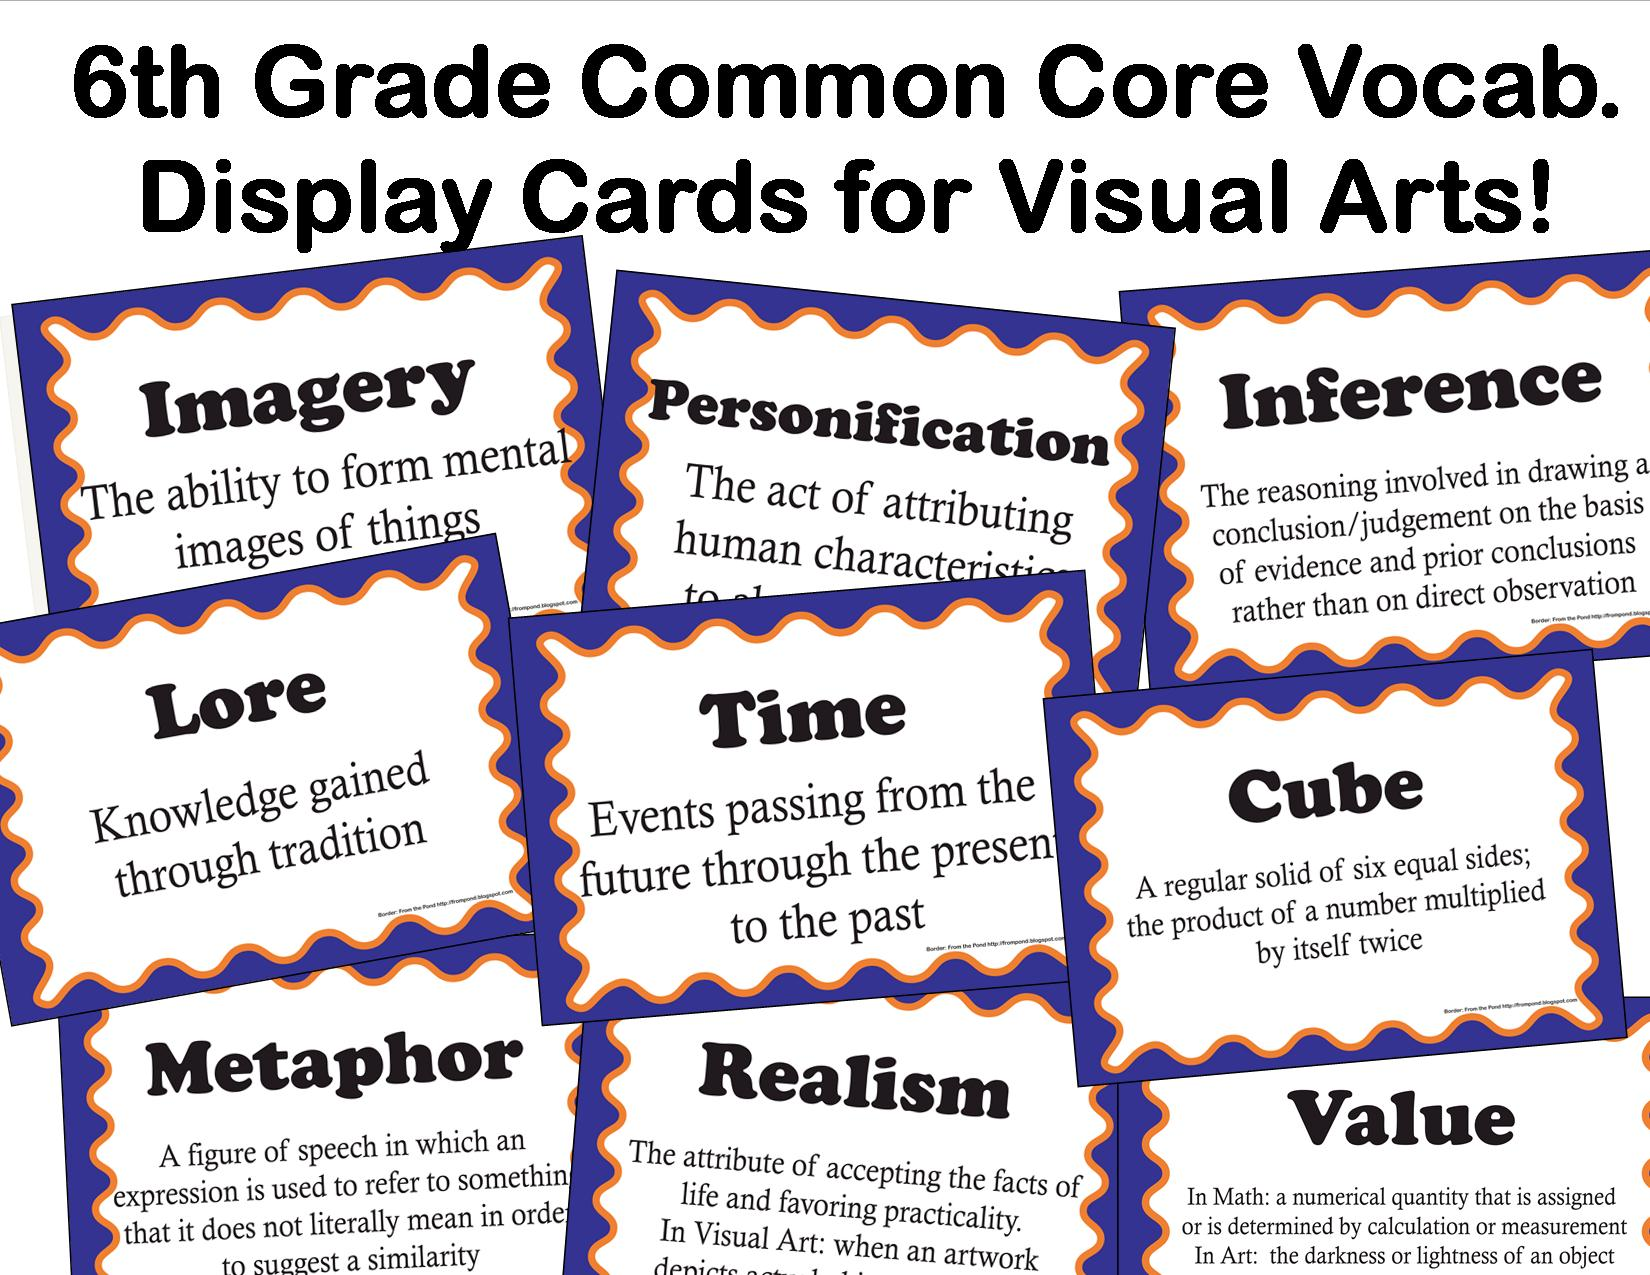 The Smartteacher Resource Common Core Language Arts Vocabulary For Visual Arts For 6th Grade